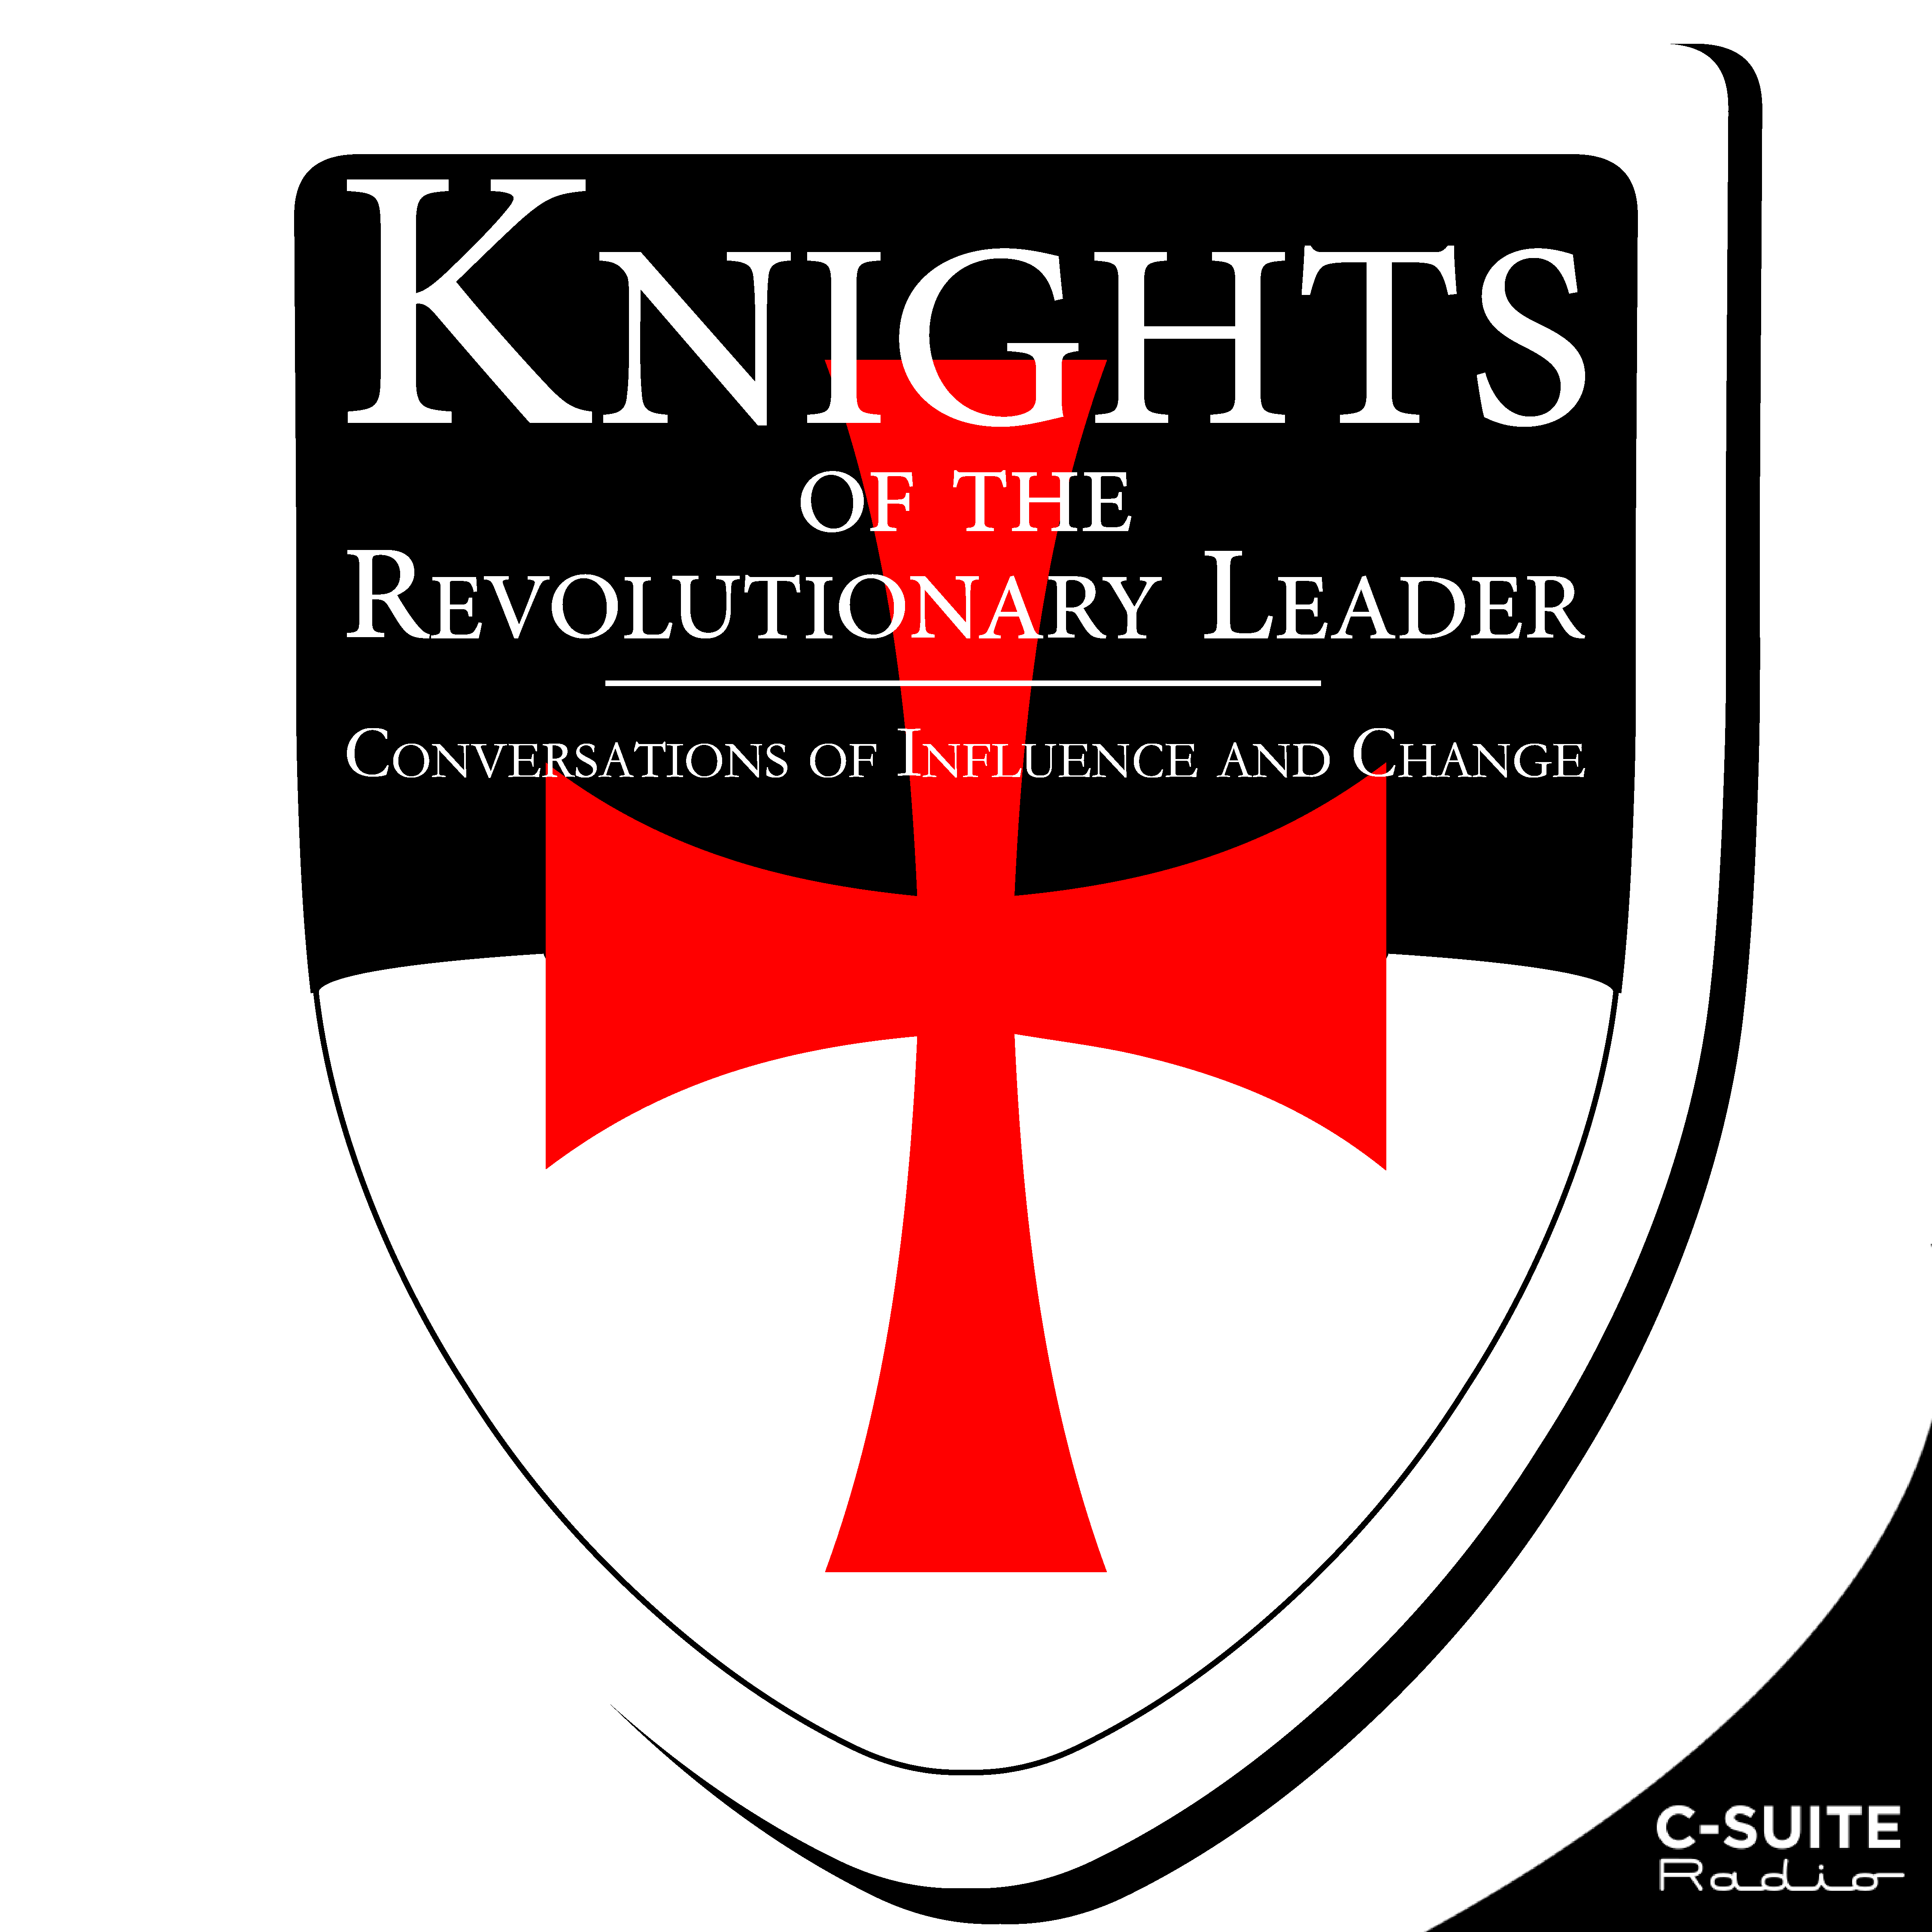 Knights of the Revolutionary Leader: Conversations of Influence and Change